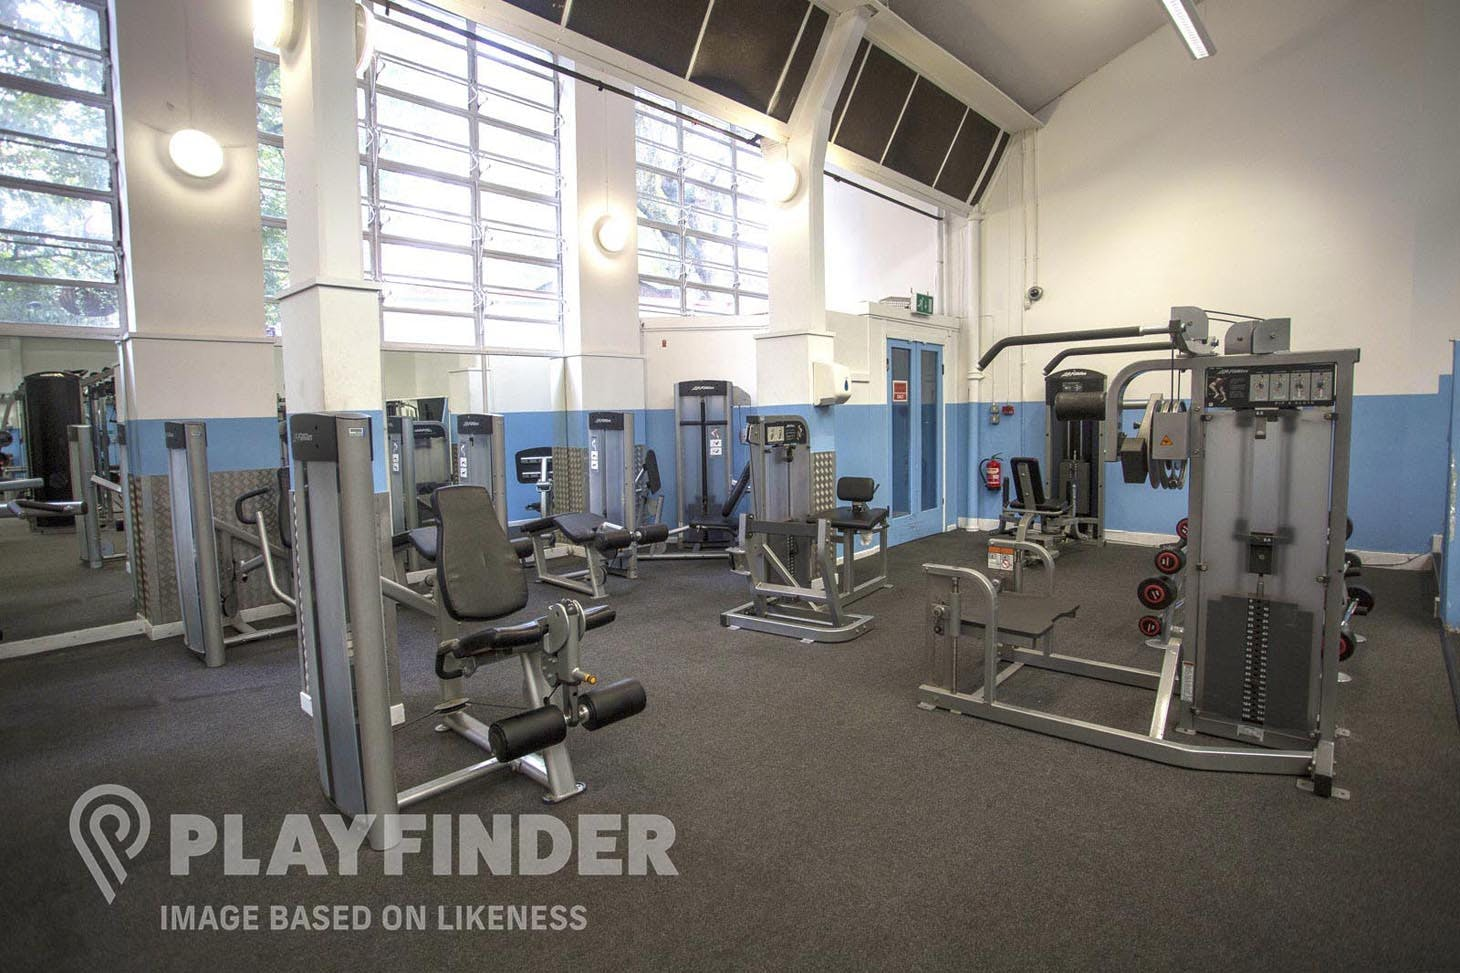 Gurnell Leisure Centre Gym gym